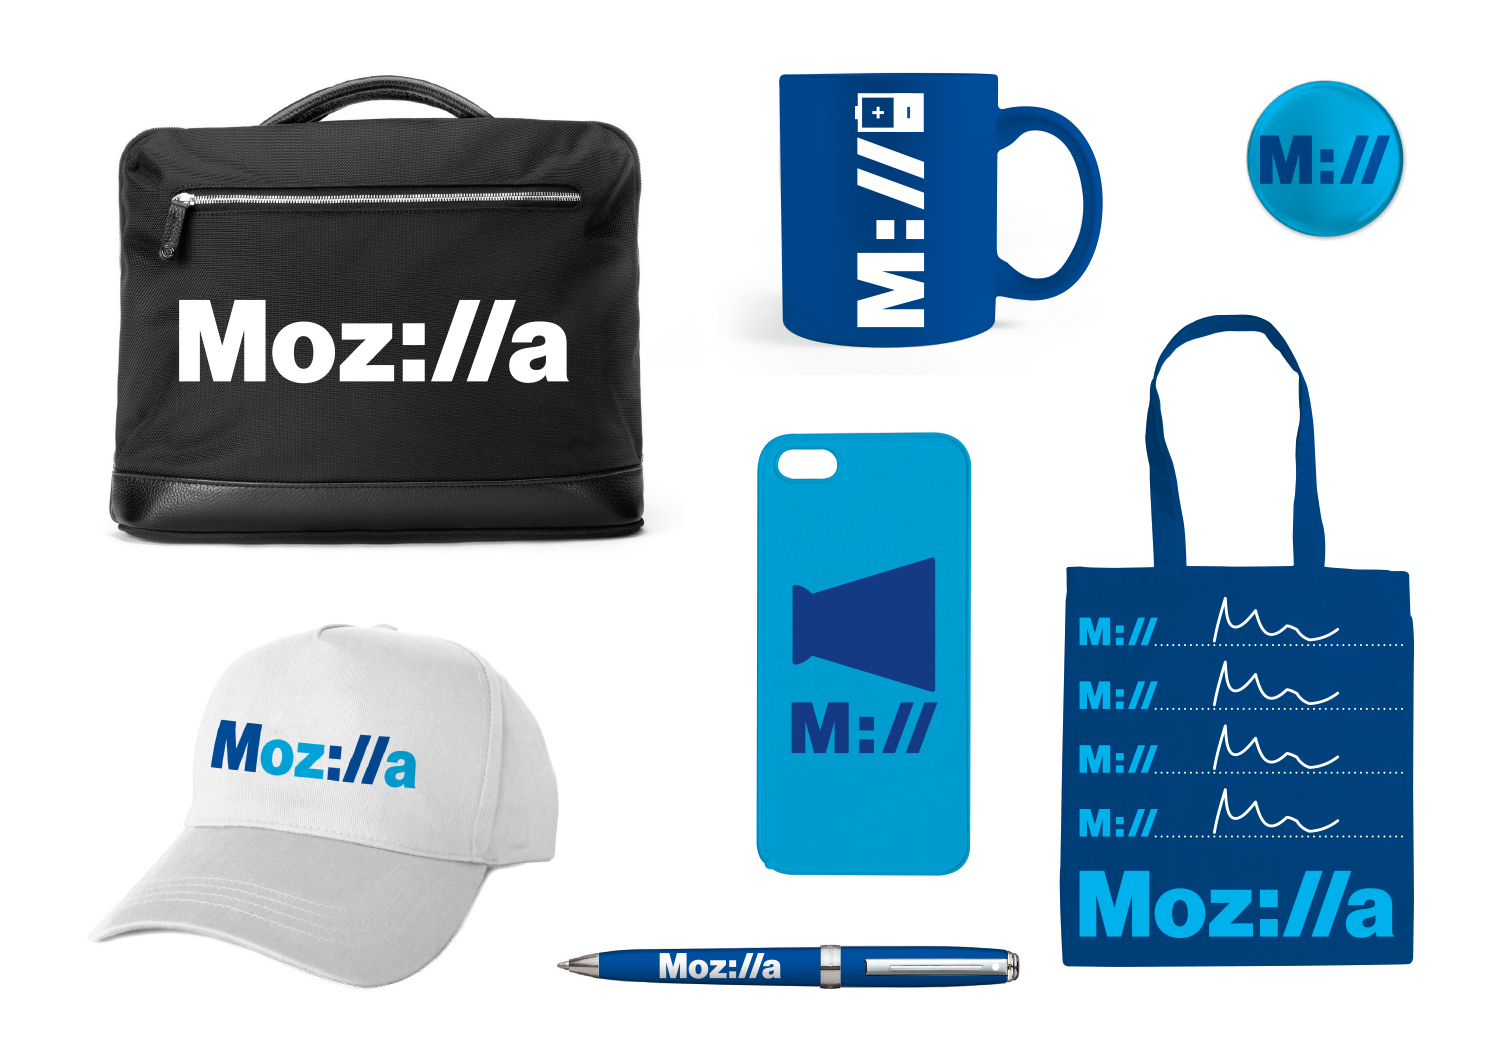 jb_Mozilla_design_pres_edit_3.key